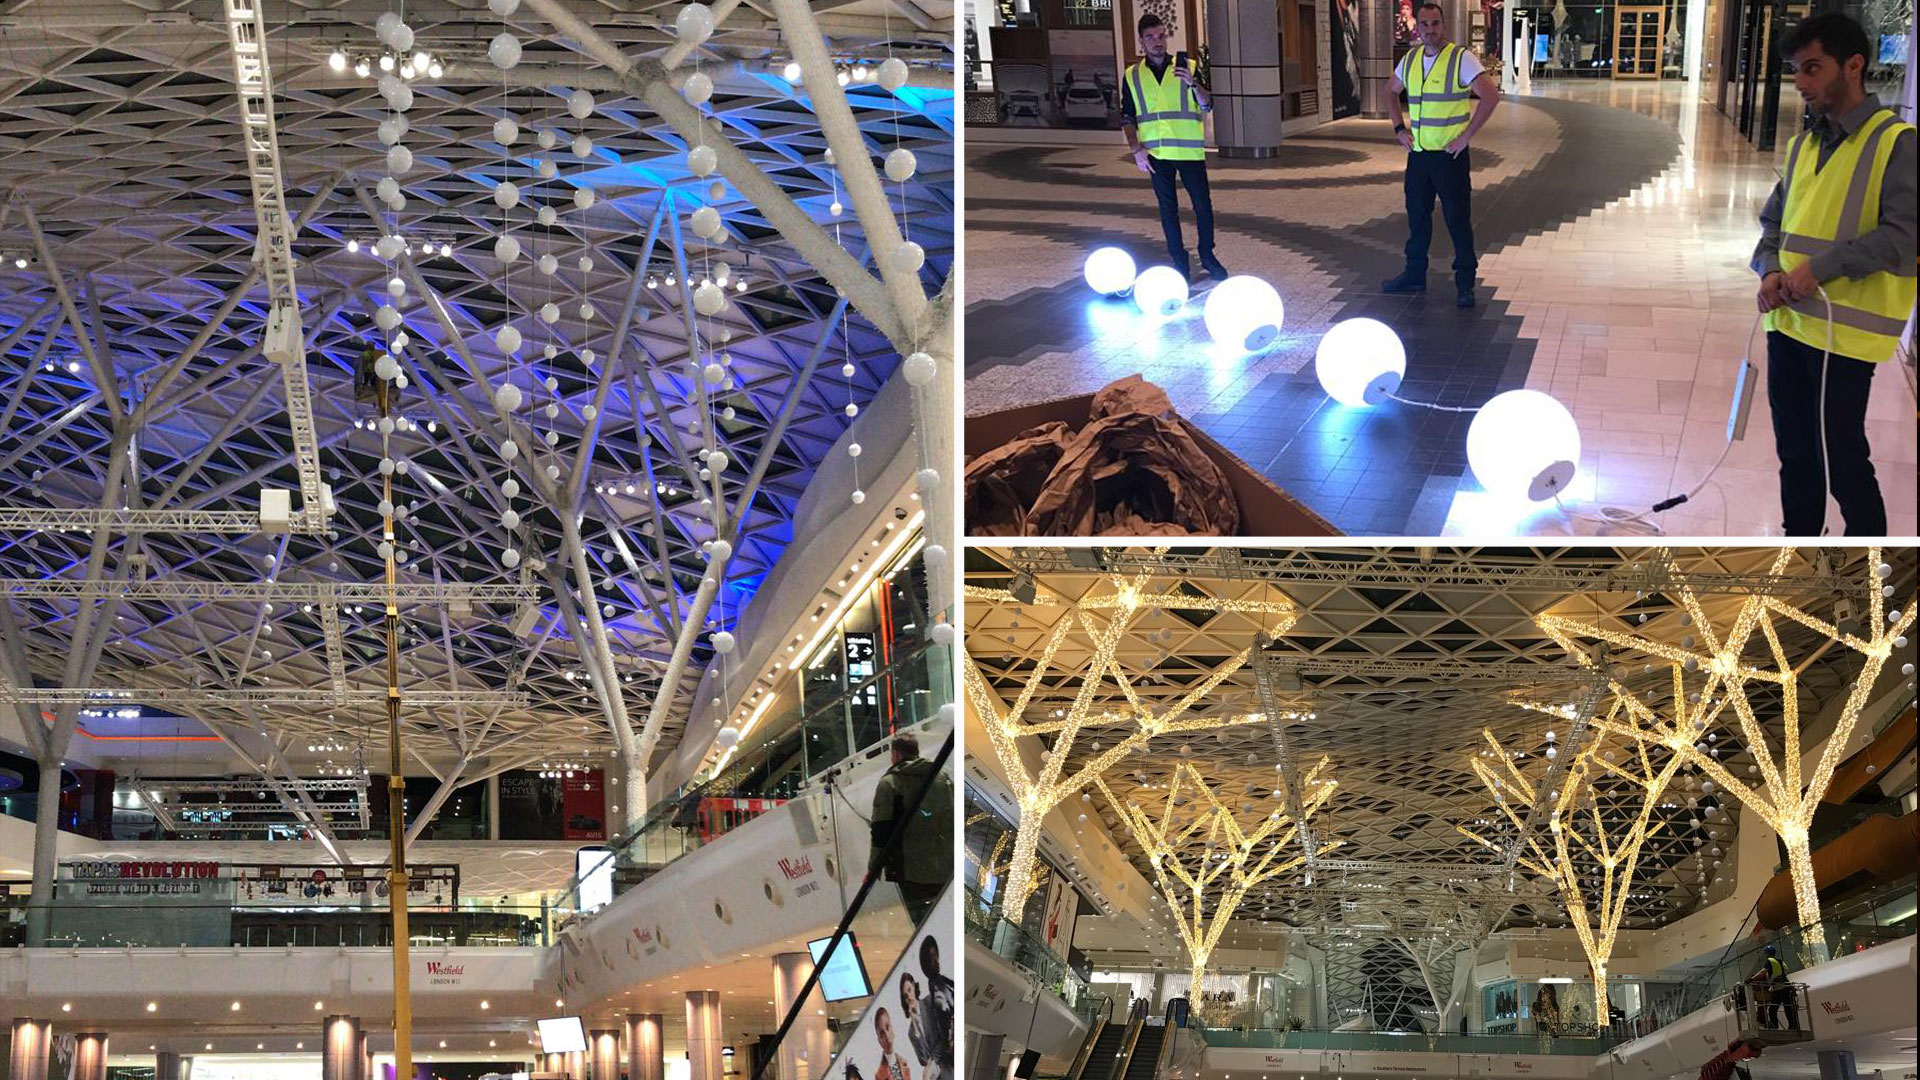 3e3641261 Pictures of the installation of light ball decoration in the shopping  center Westfield London in the